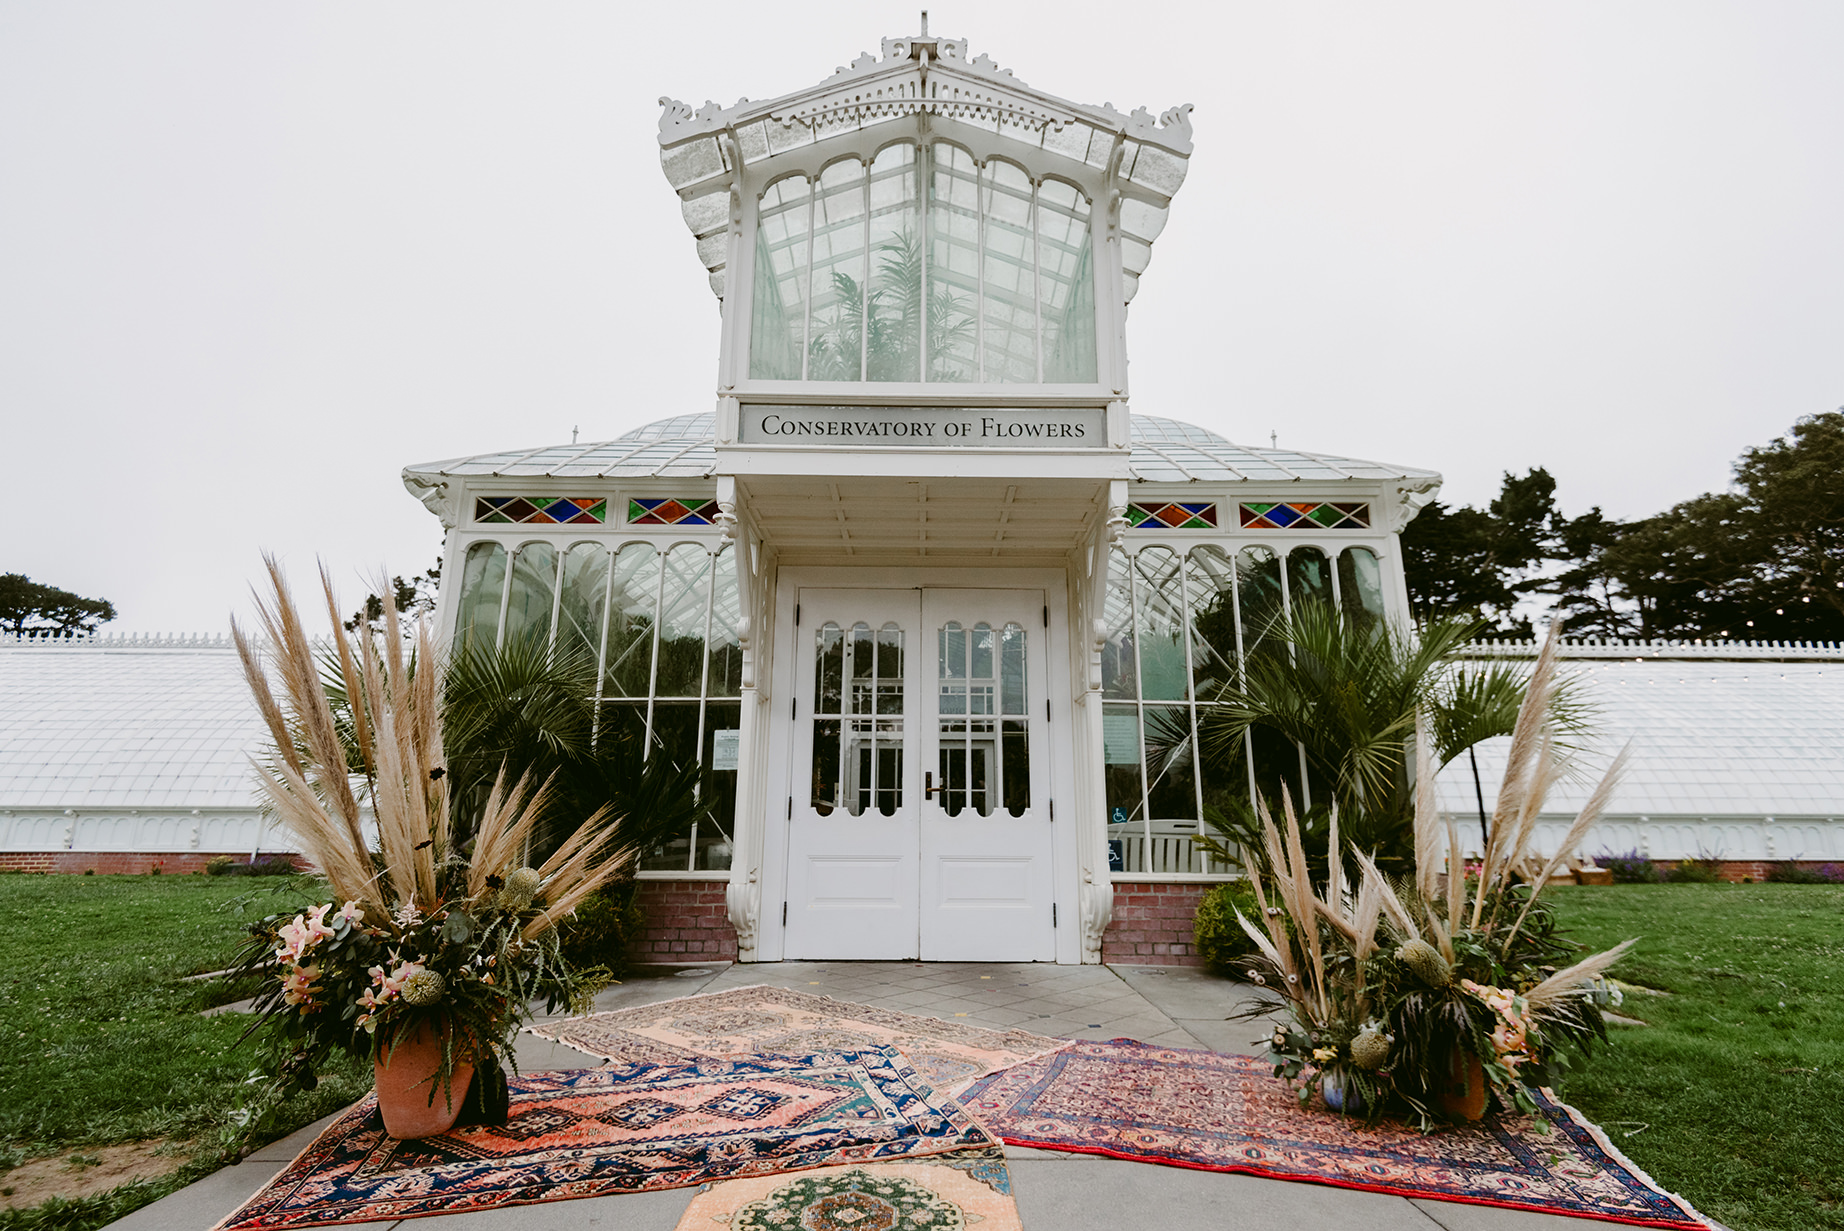 Conservatory of Flowers Wedding Ceremony Styling. Photo by Julie Pepin.